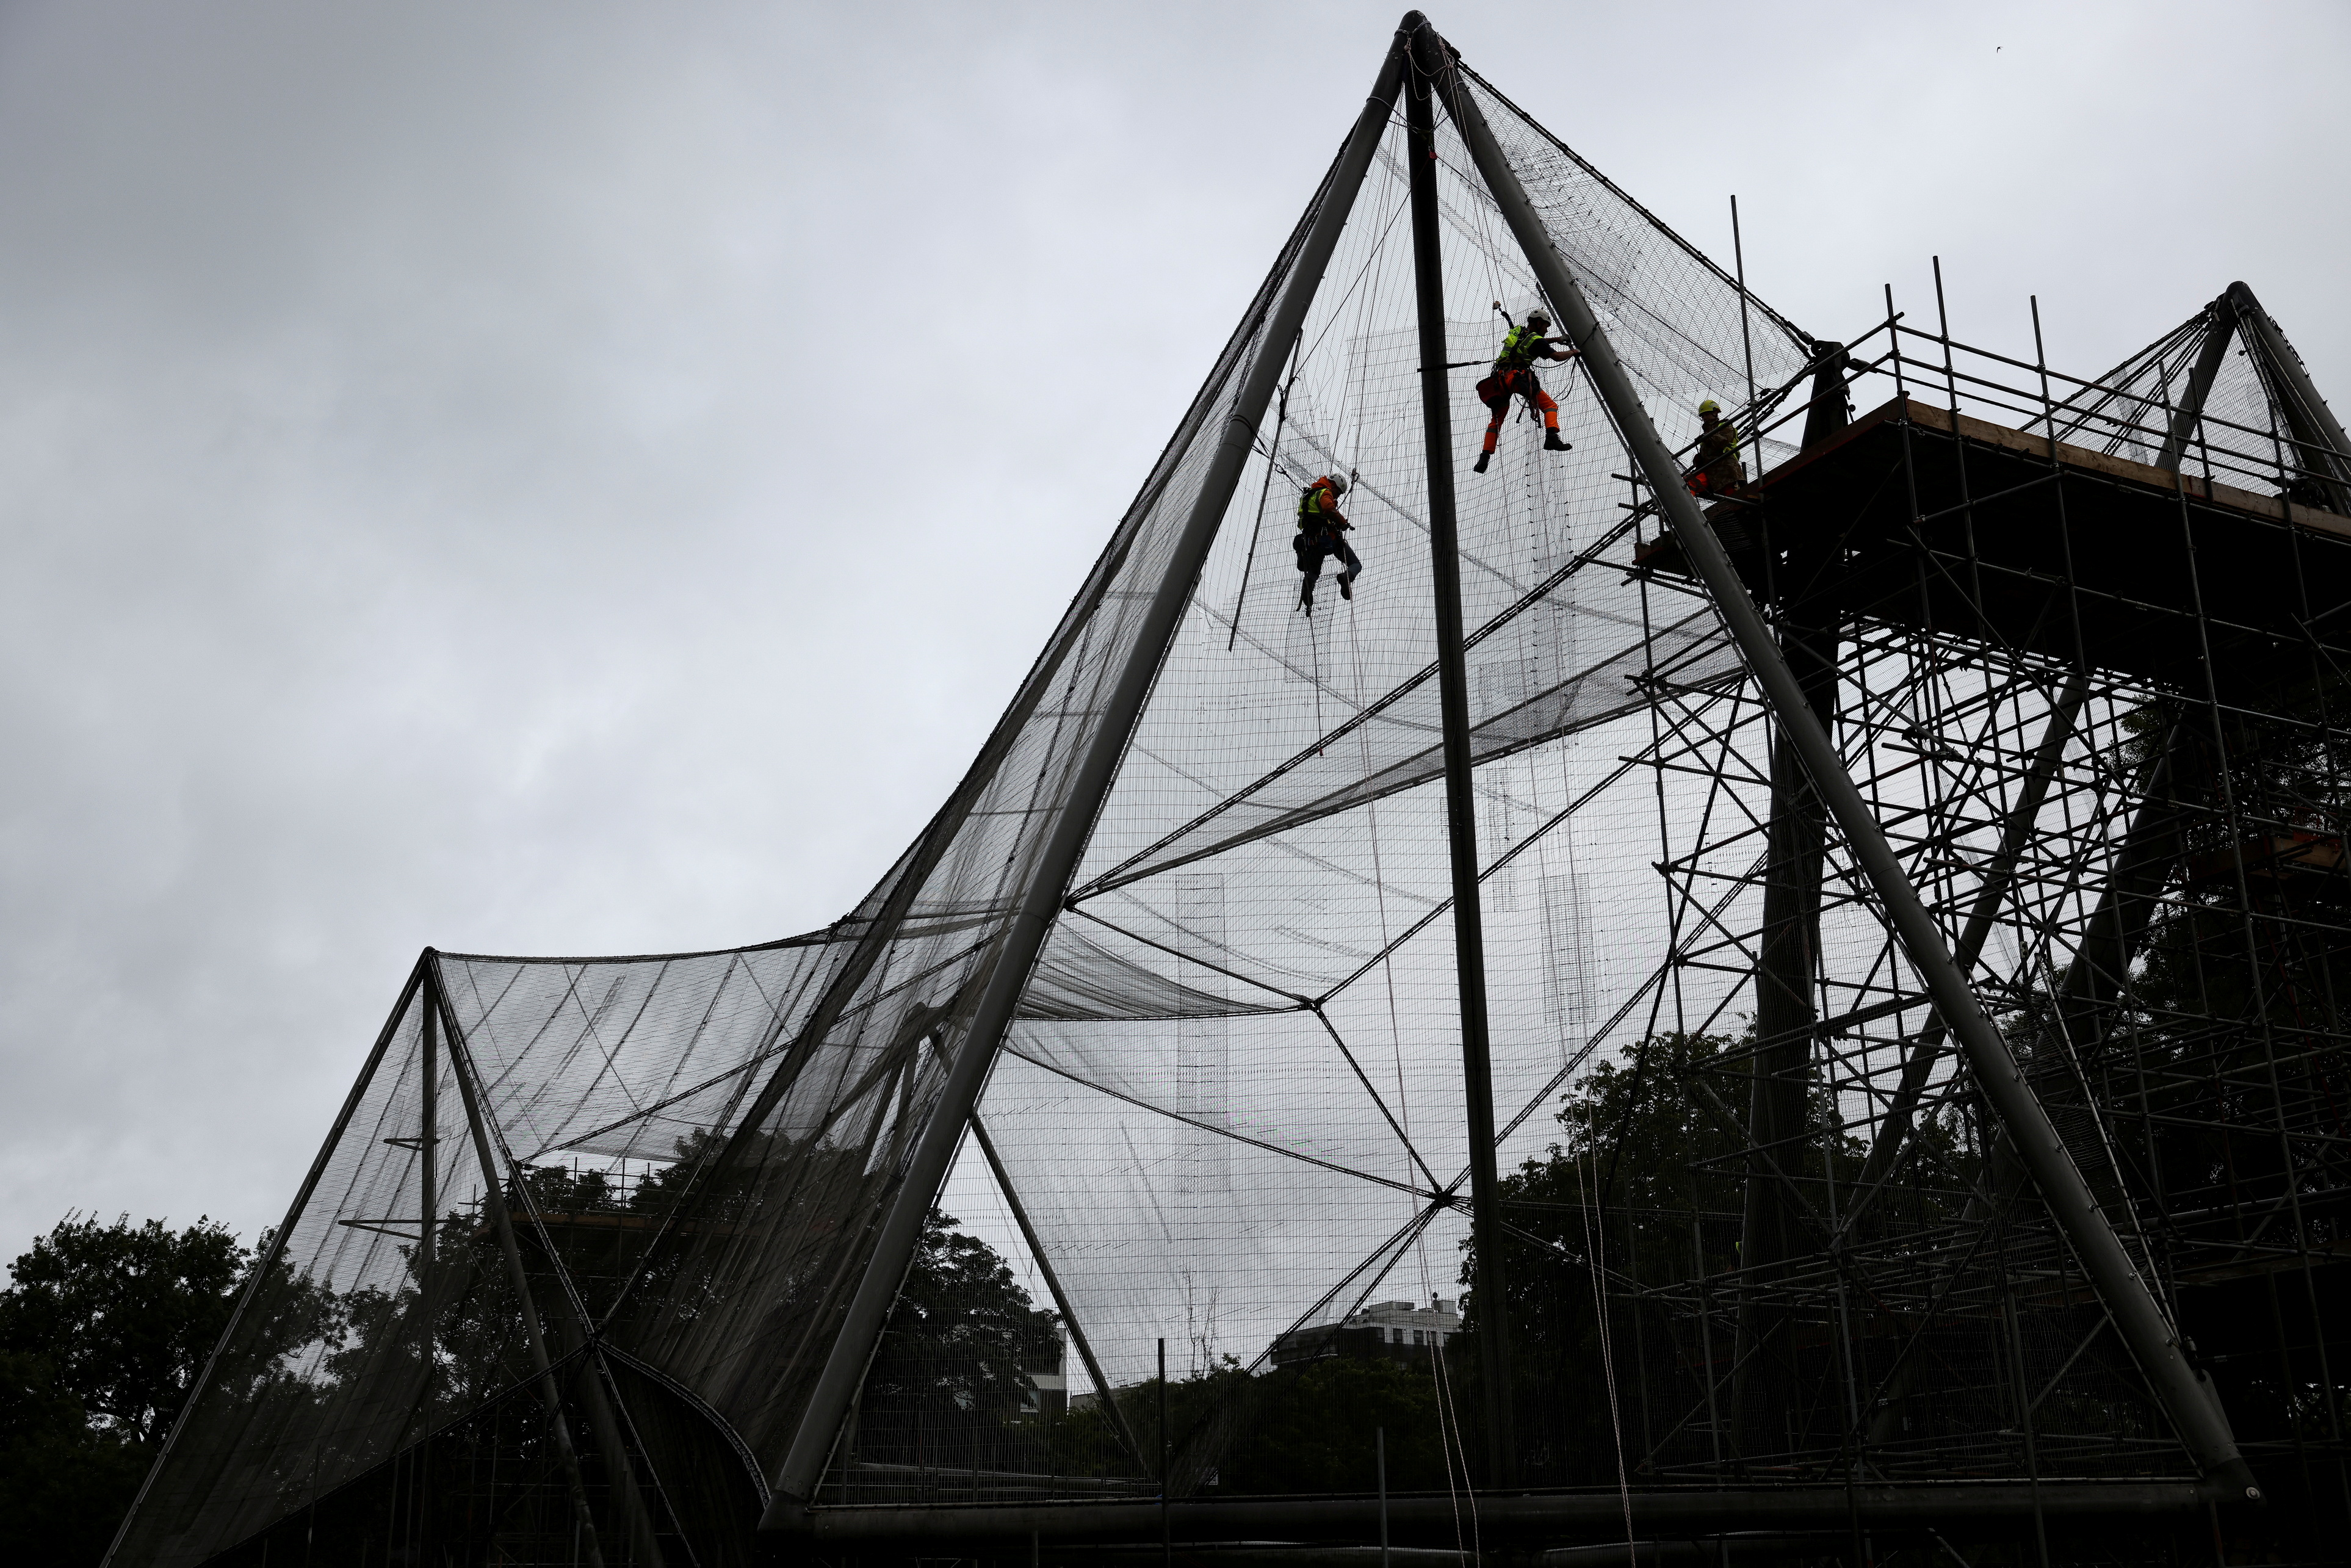 Workers abseil down the Grade II listed Snowdon Aviary at the ZSL London Zoo, to remove the 200 steel mesh panels that wrap around the structure which has stood unchanged for 50 years, as part of a restoration project that will see the aviary transformed in to a new home for a troop of eastern black and white colobus monkeys, in London, Britain, July 30, 2021. REUTERS/Henry Nicholls/File Photo